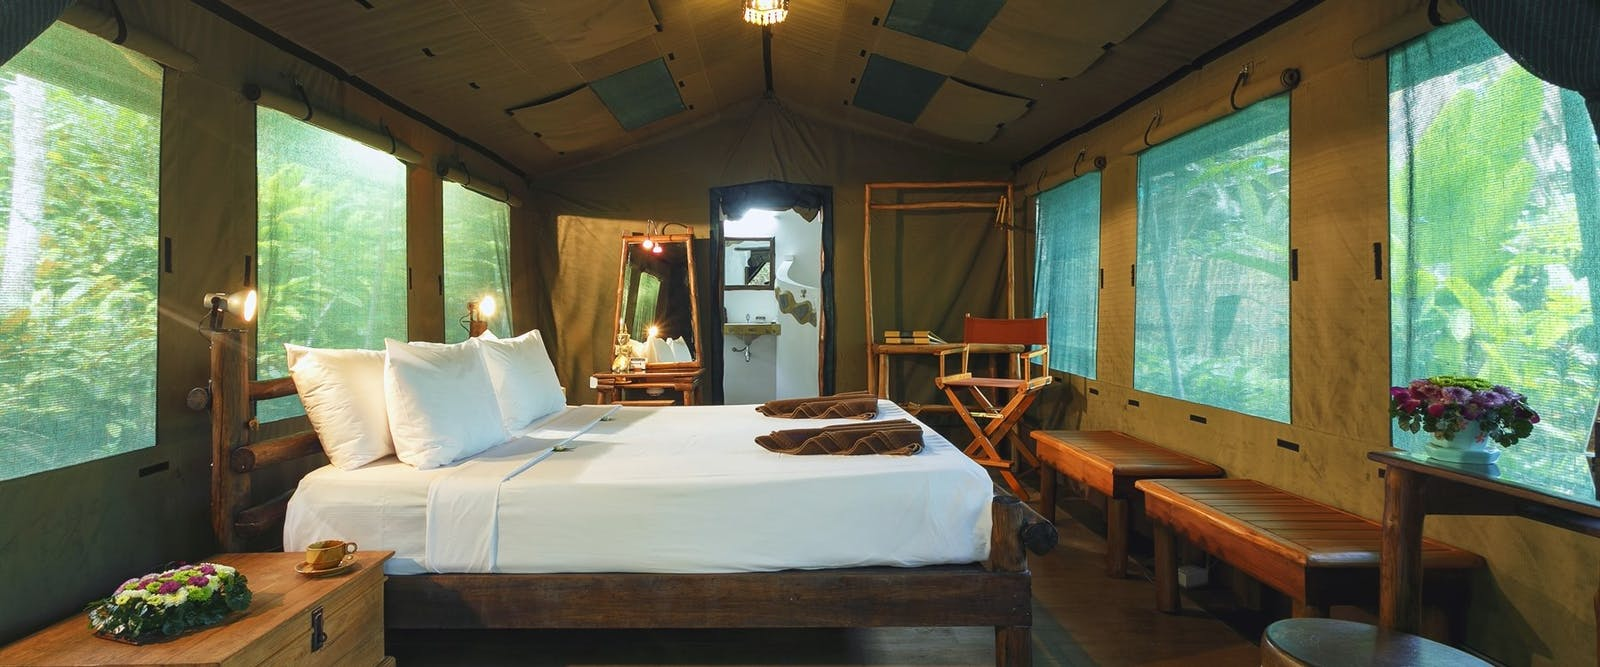 elephant camps tent interior  at Elephant Hills Jungle Safari